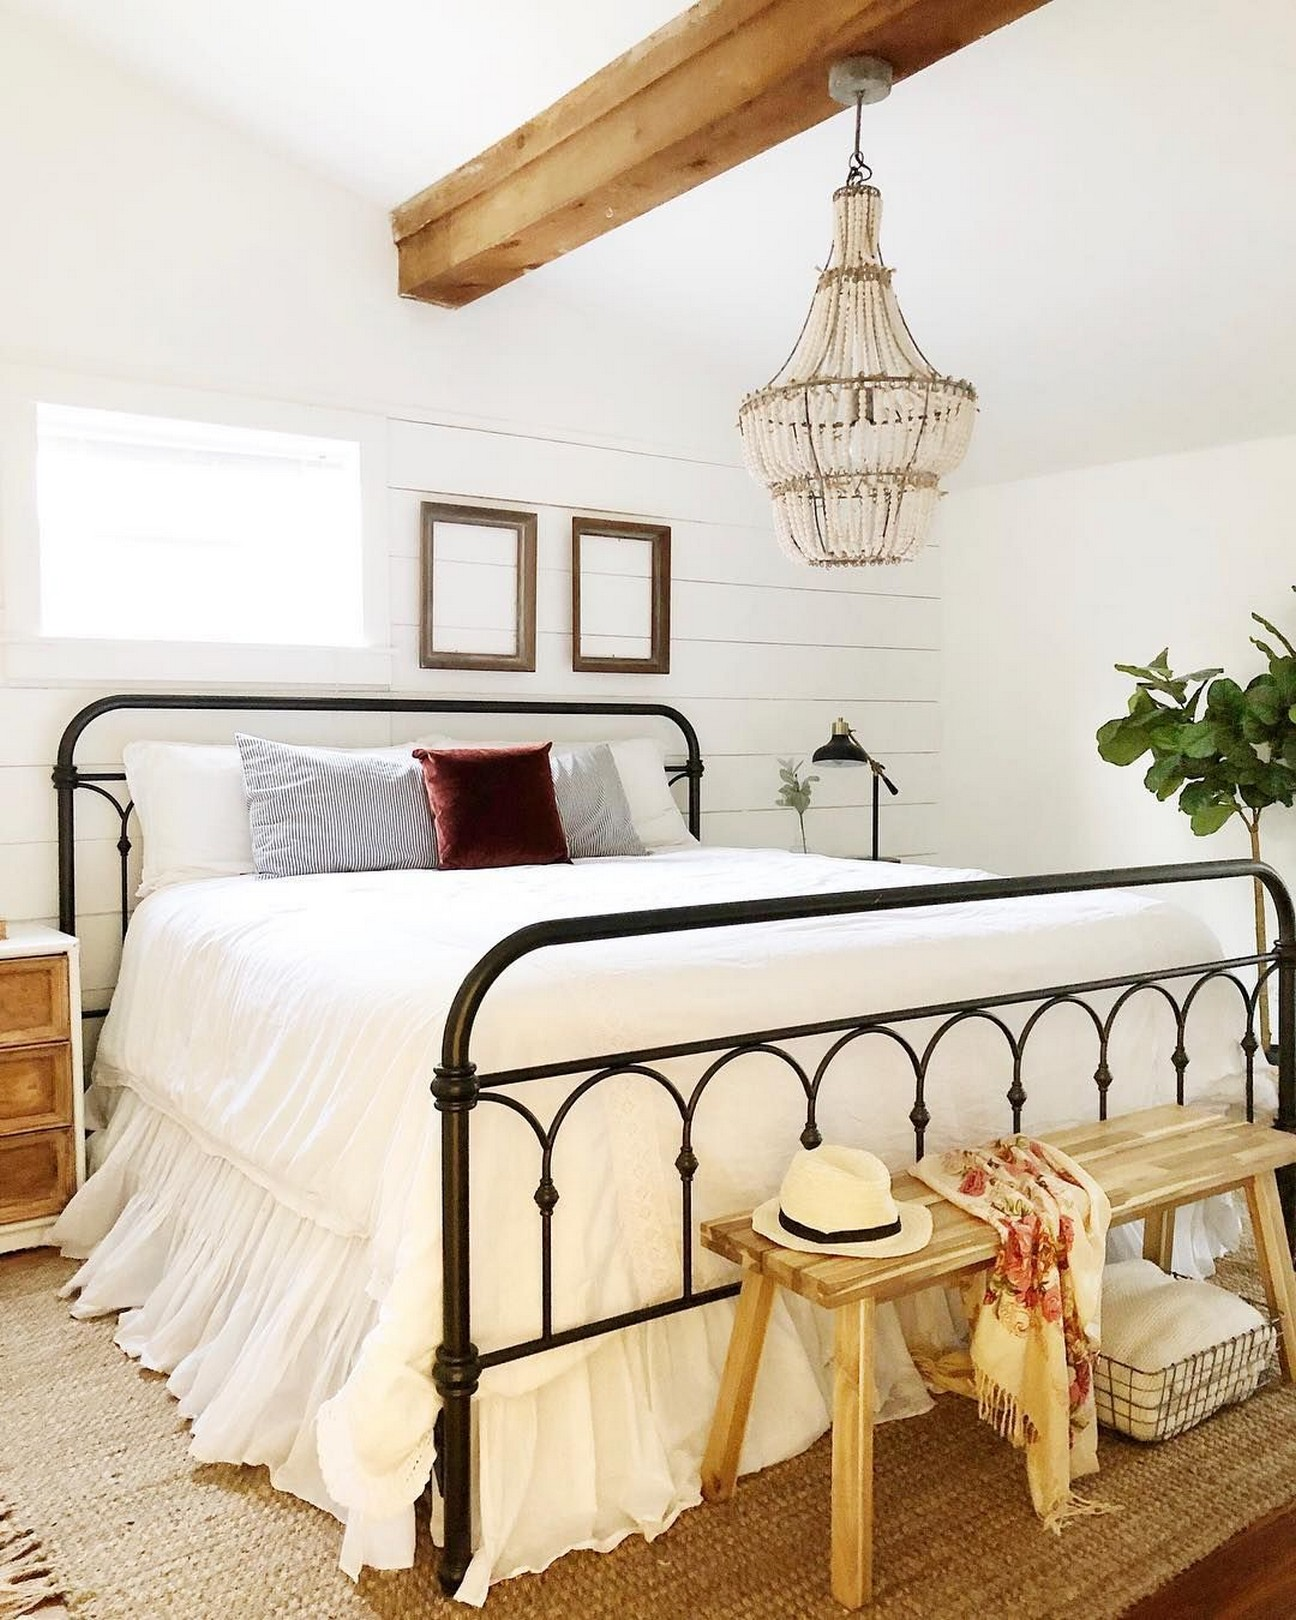 64 Rustic Bedroom Furniture How to Look Elegance Home Decor 61